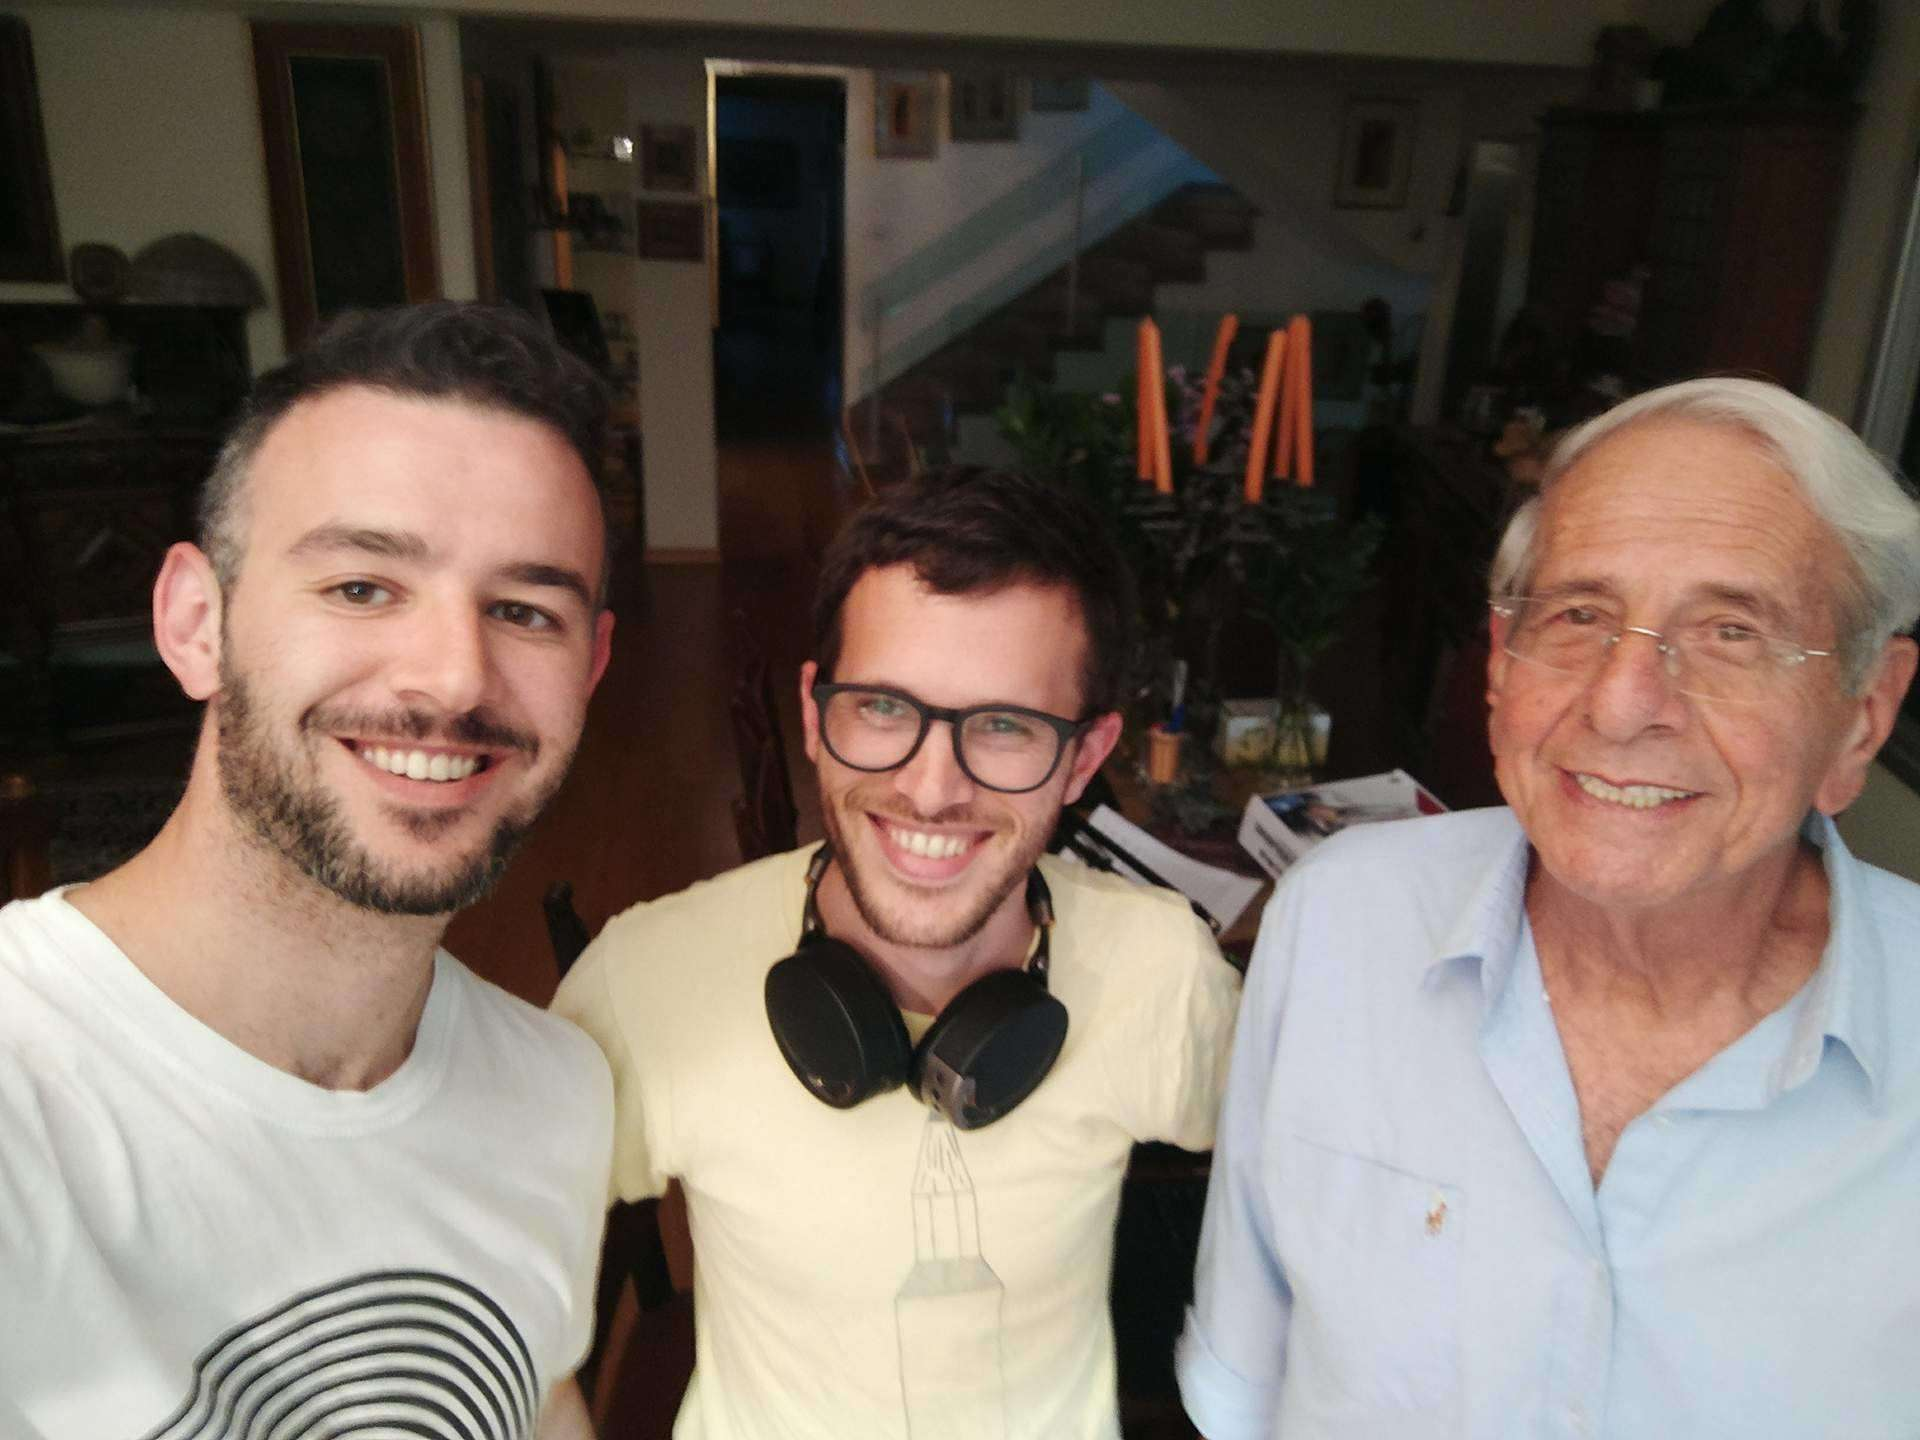 The legendary Chaim Topol, Weinstein and Meningher in the studio. (Credit: Courtesy)